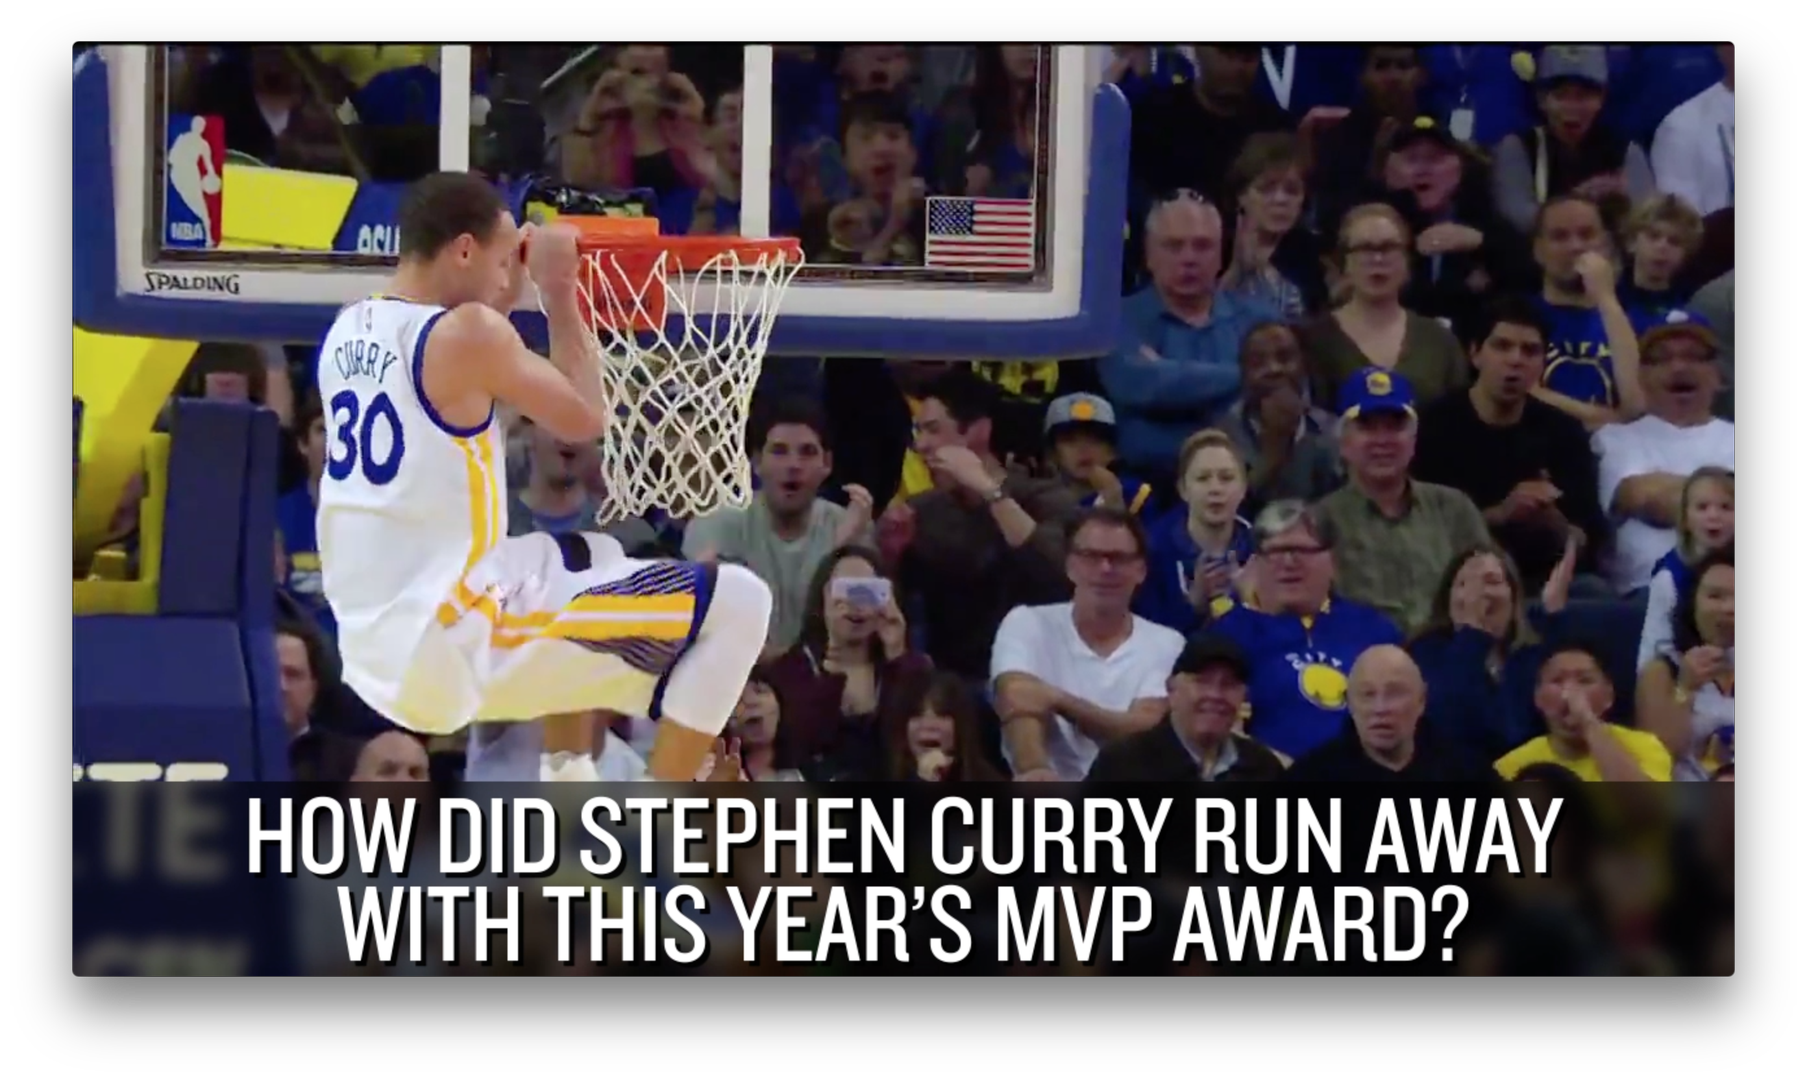 Stephen Curry becomes the NBA's first unanimous MVP winner